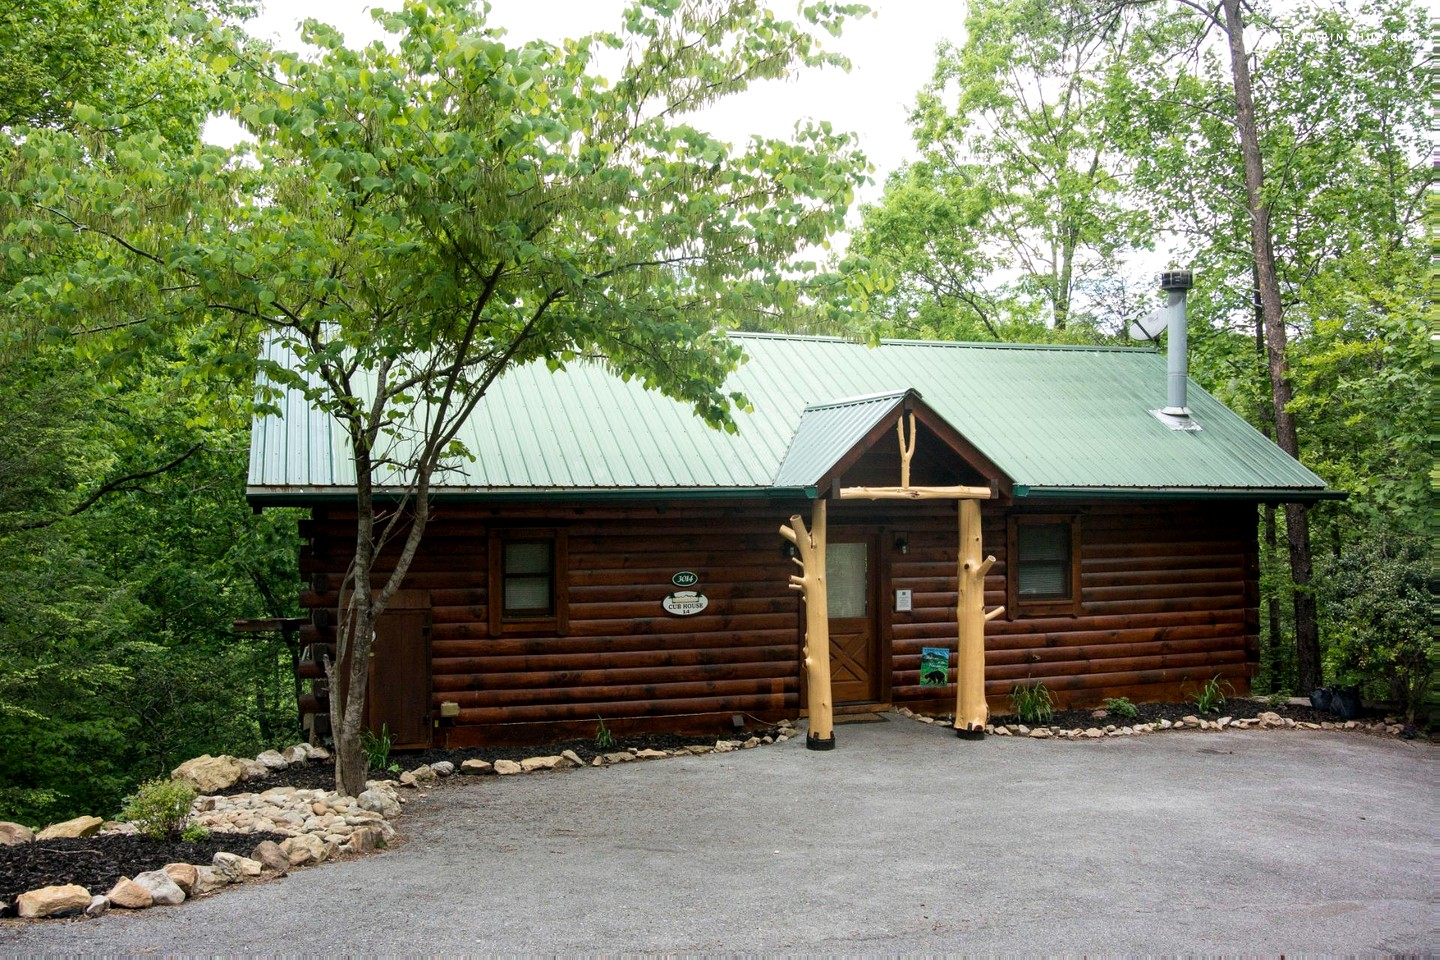 Smoky mountain cabin vacation rental Cabin rental smokey mountains